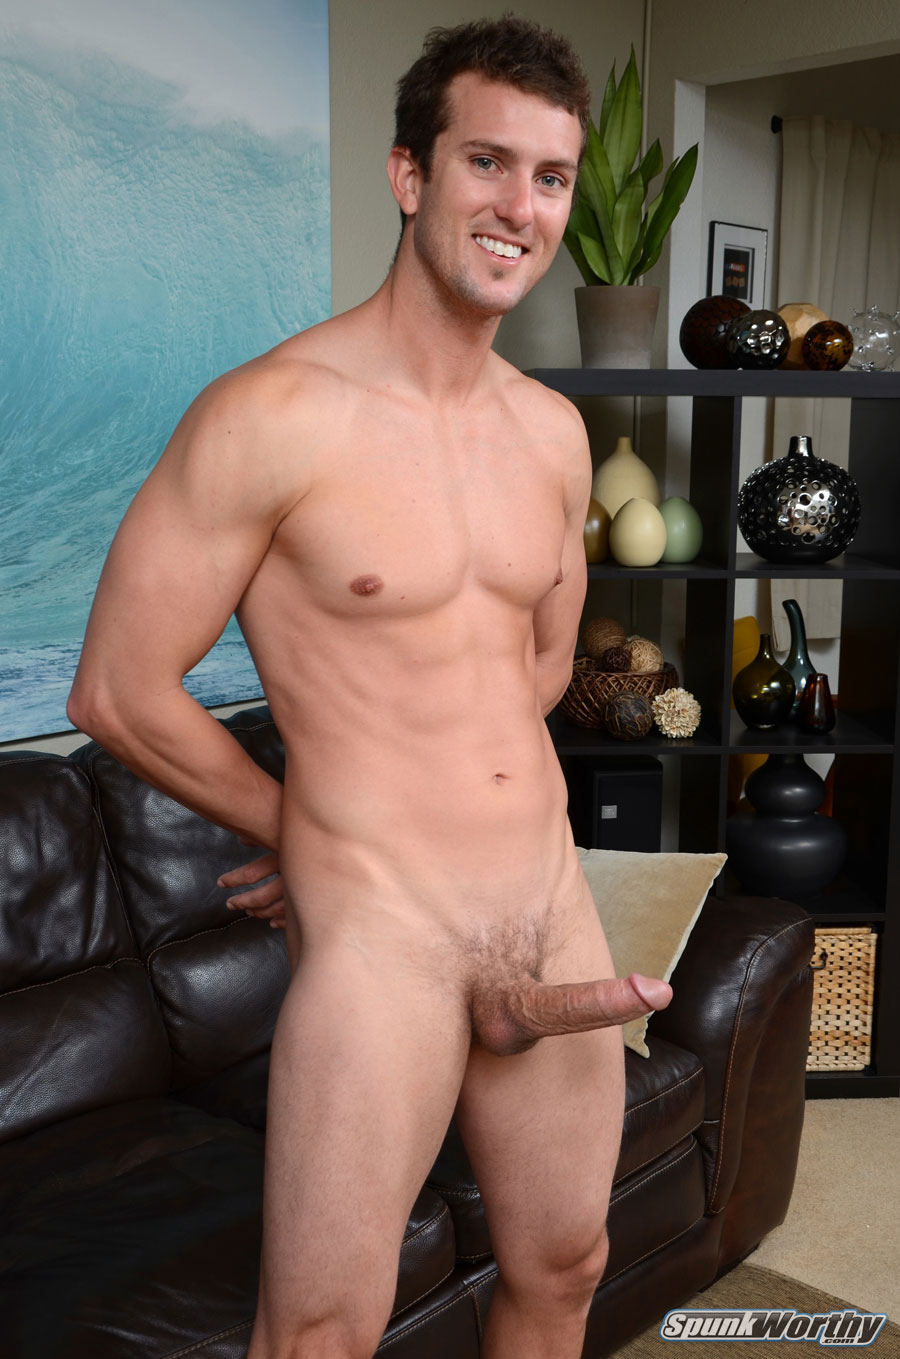 Amateur Straight Surfer Gets His First Handjob From A Guy Jerk